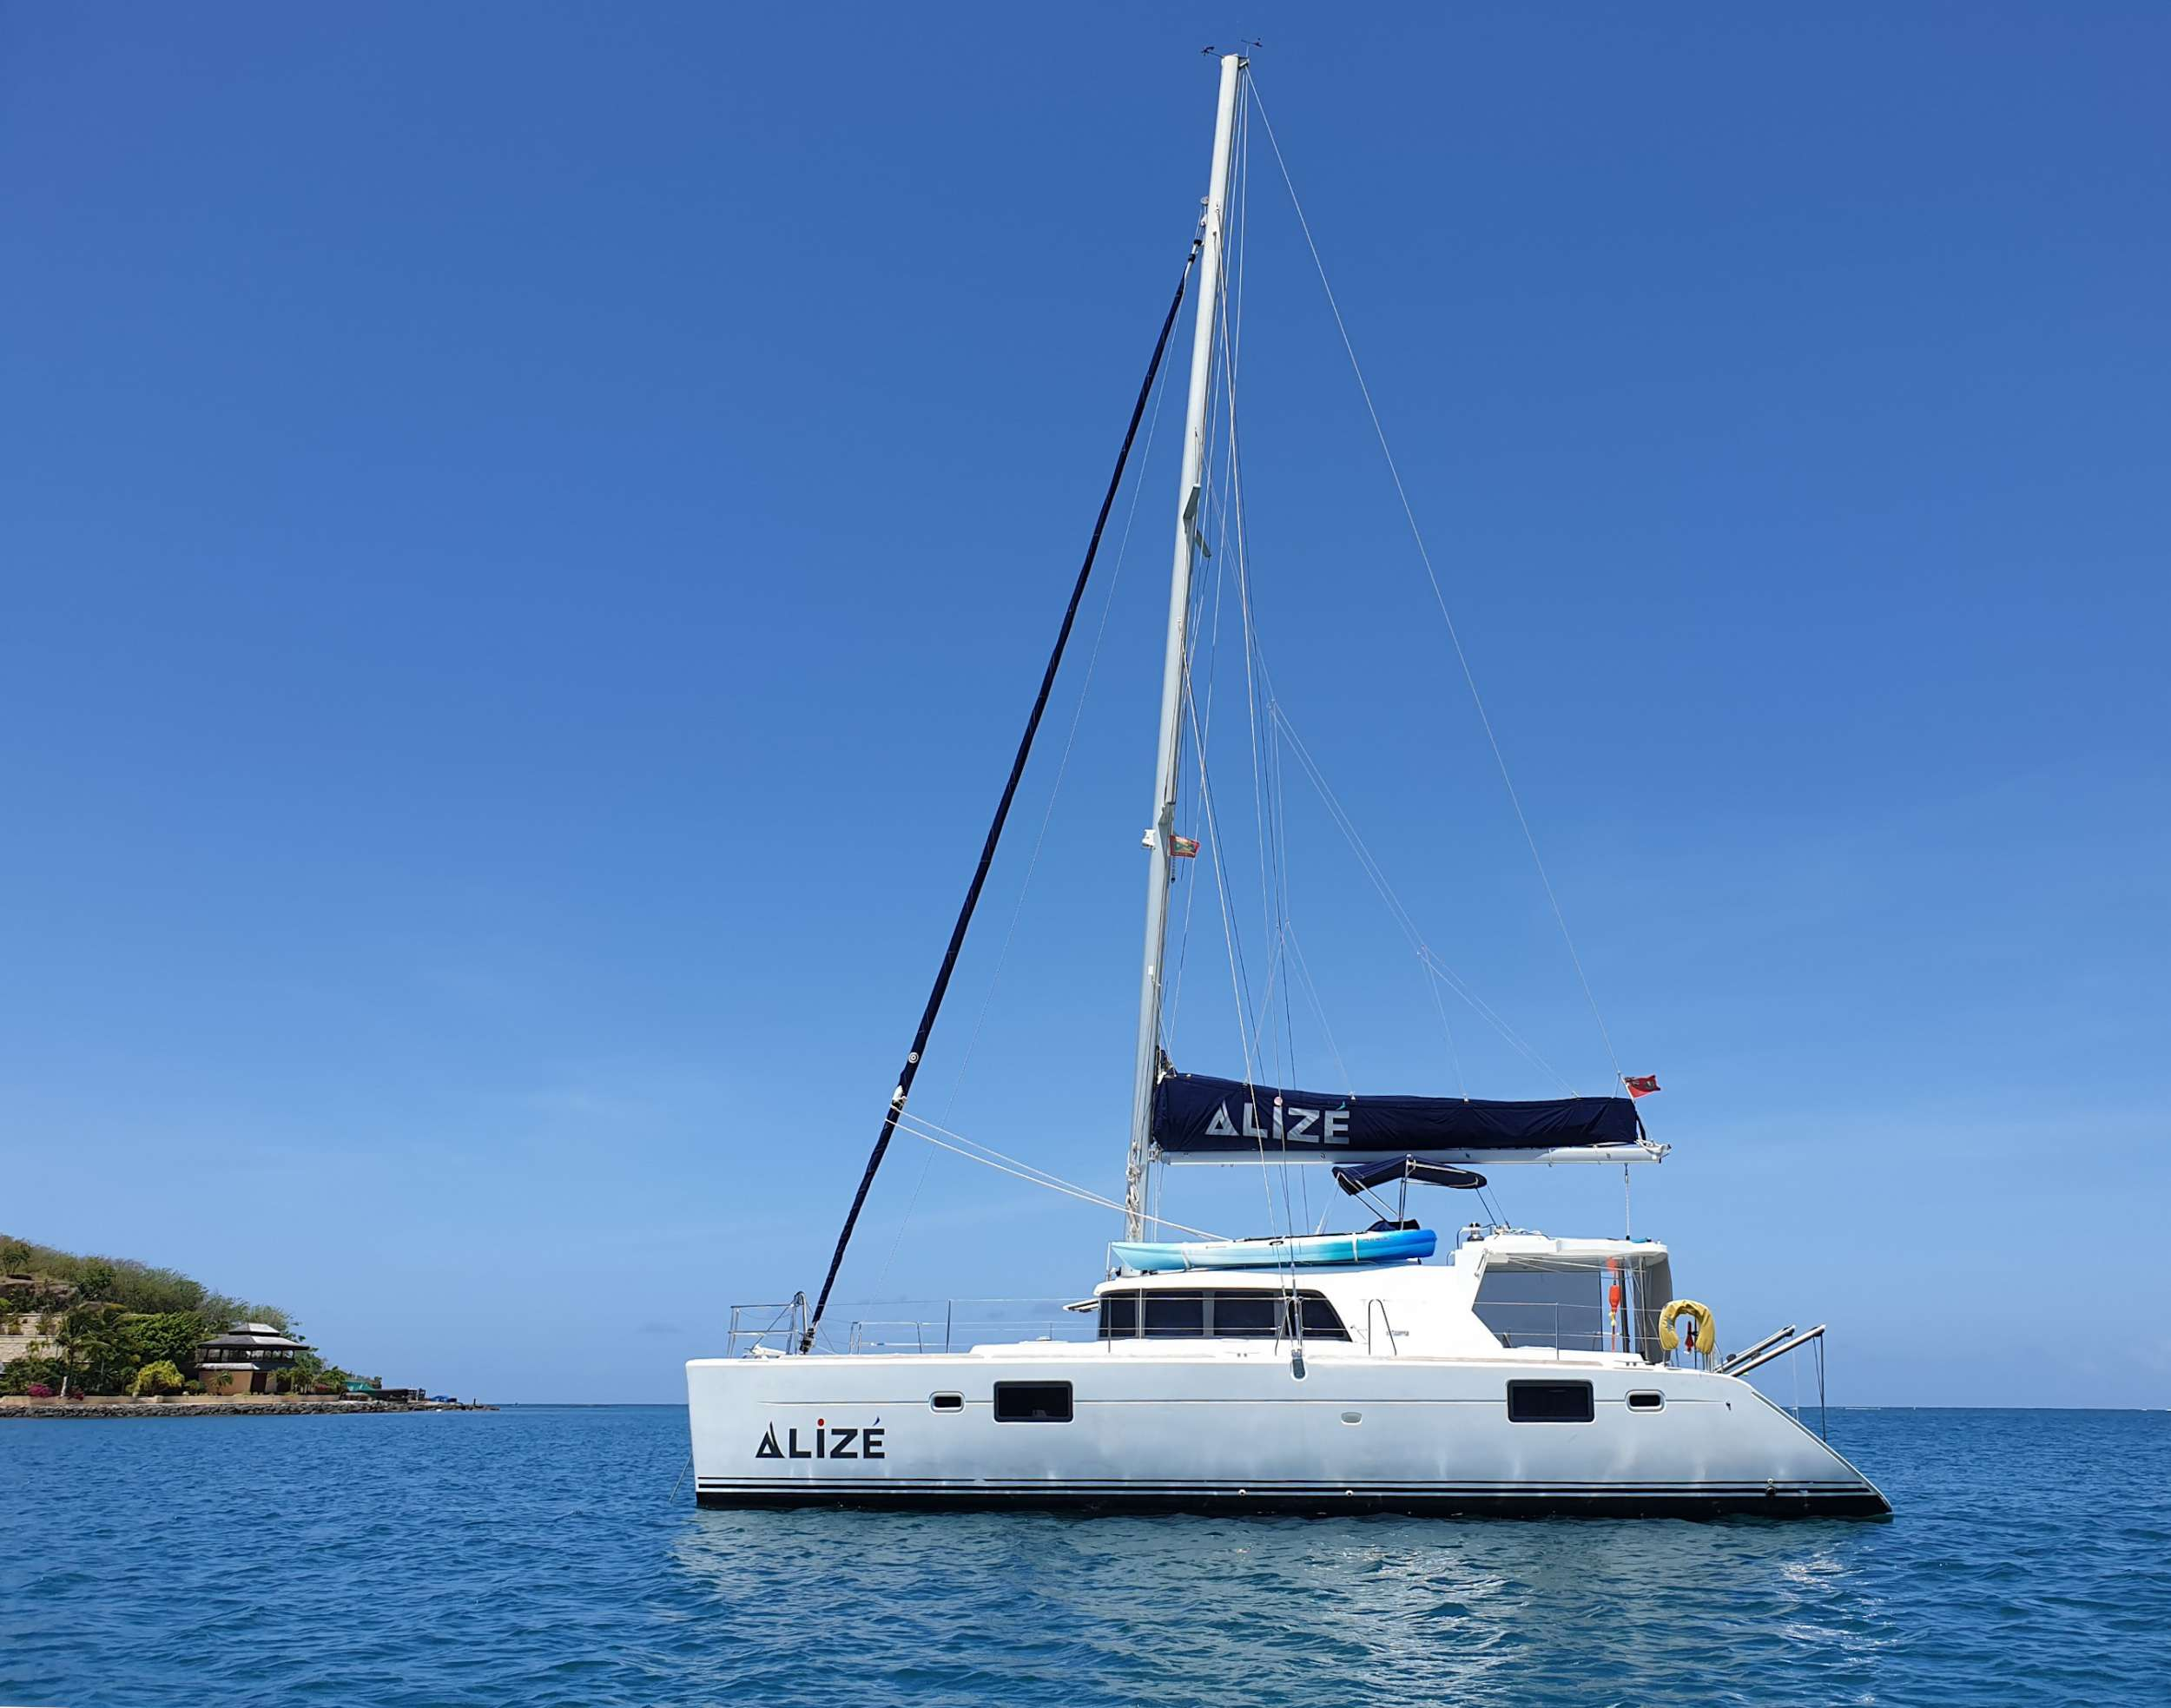 Main image of ALIZÉ yacht